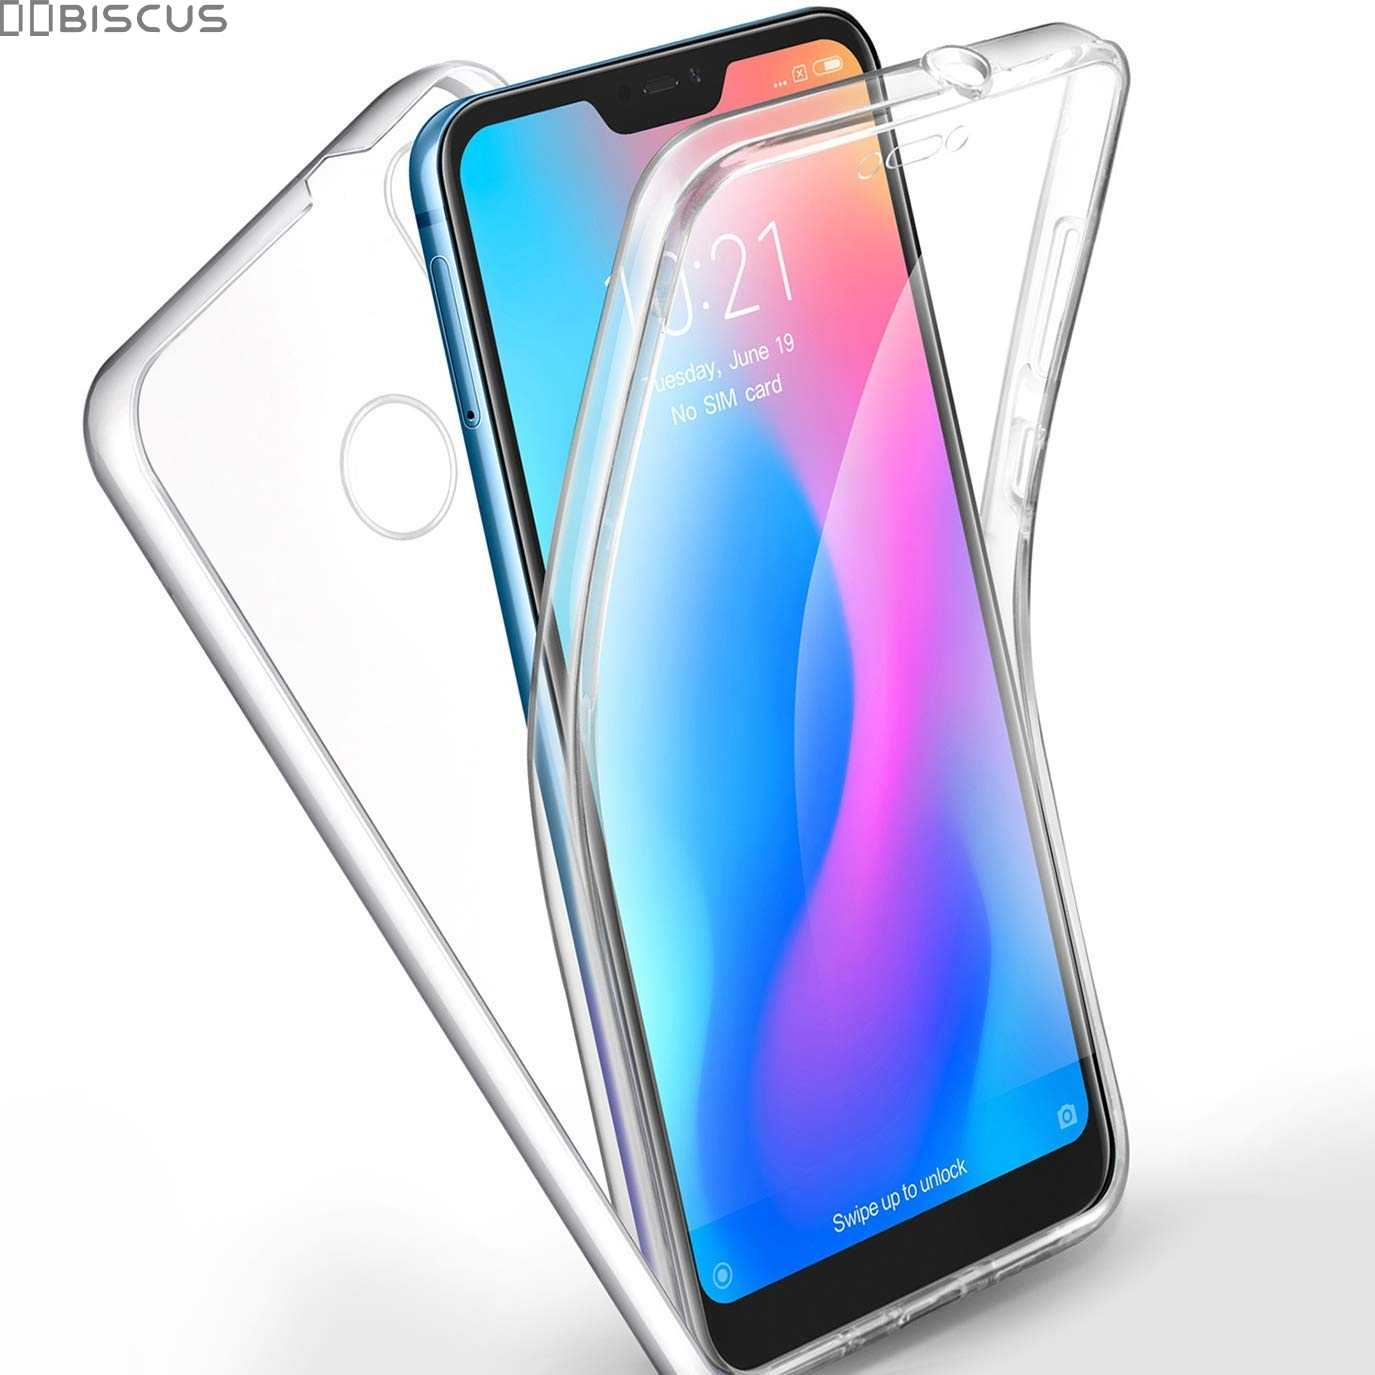 Full Body Case for Xiaomi Mi A2 Lite A1 8 SE A3 TPU Cover on Xiaomi Redmi Note 5 Pro Note 7 4 Global 4X Redmi 7A 6A 5 Plus 5A 6